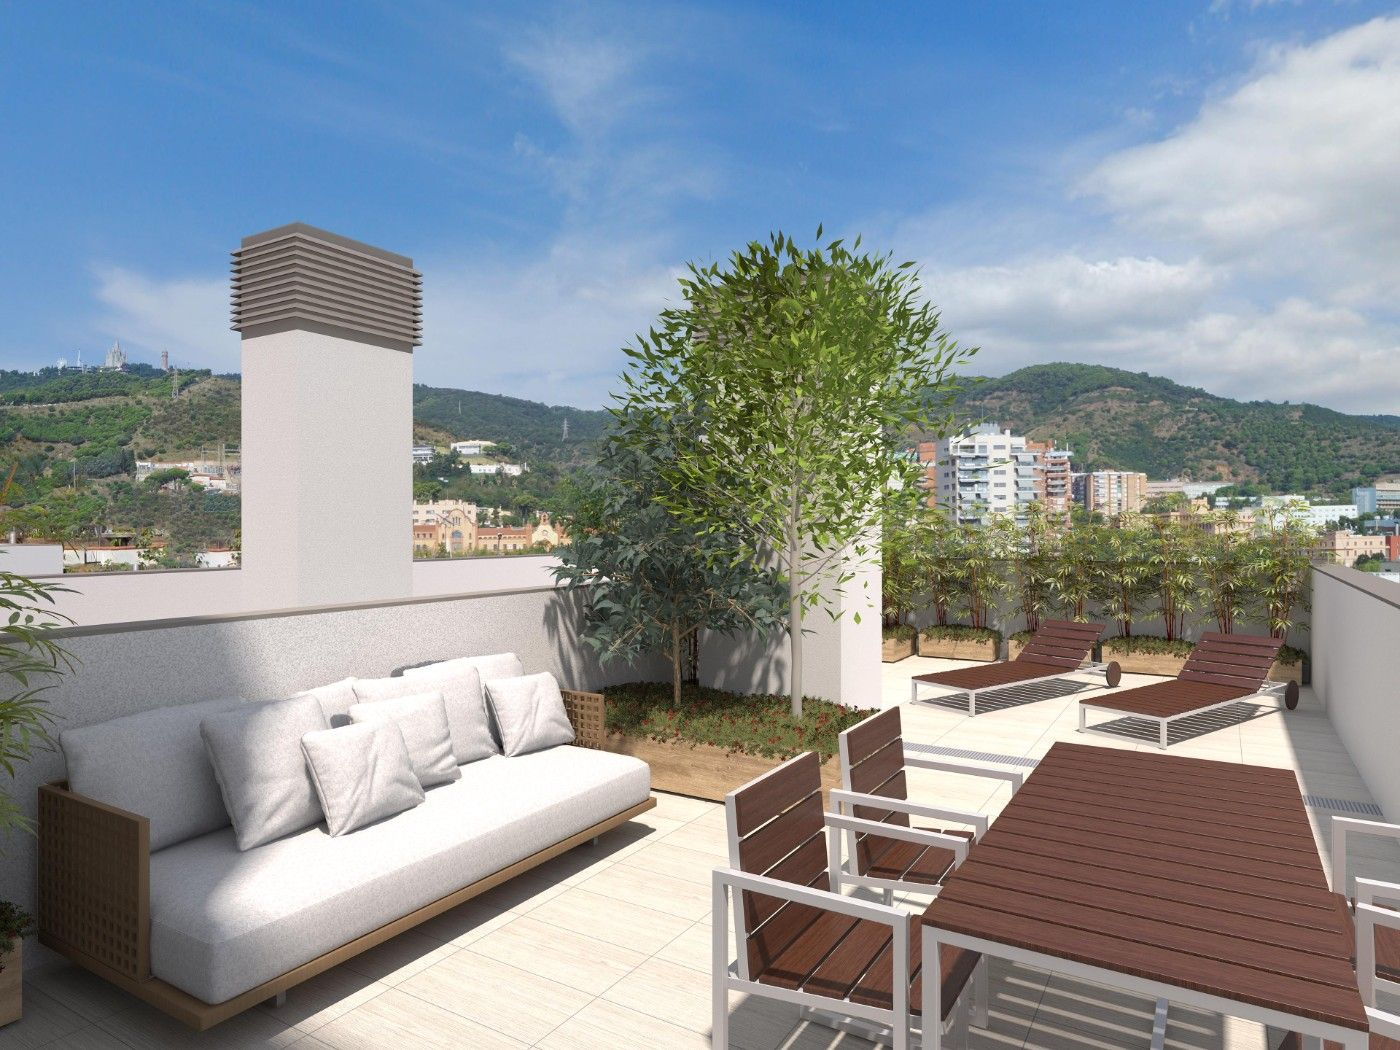 Penthouse in Carrer arenys, 58. Obra nueva